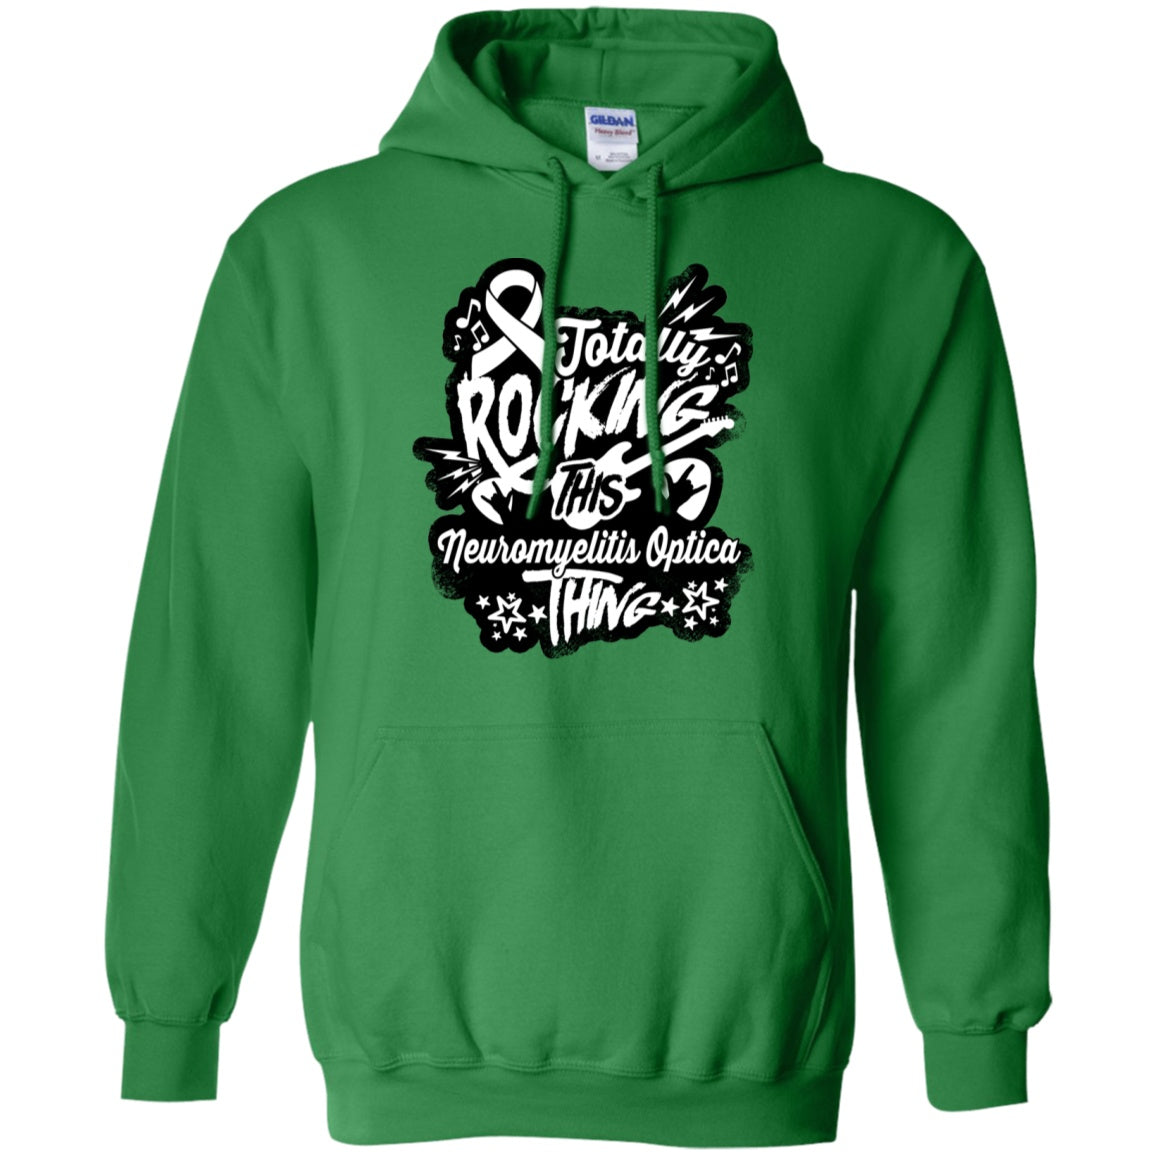 Rocking Neuromyelitis Optica Pullover Hoodie 8 oz. - The Unchargeables